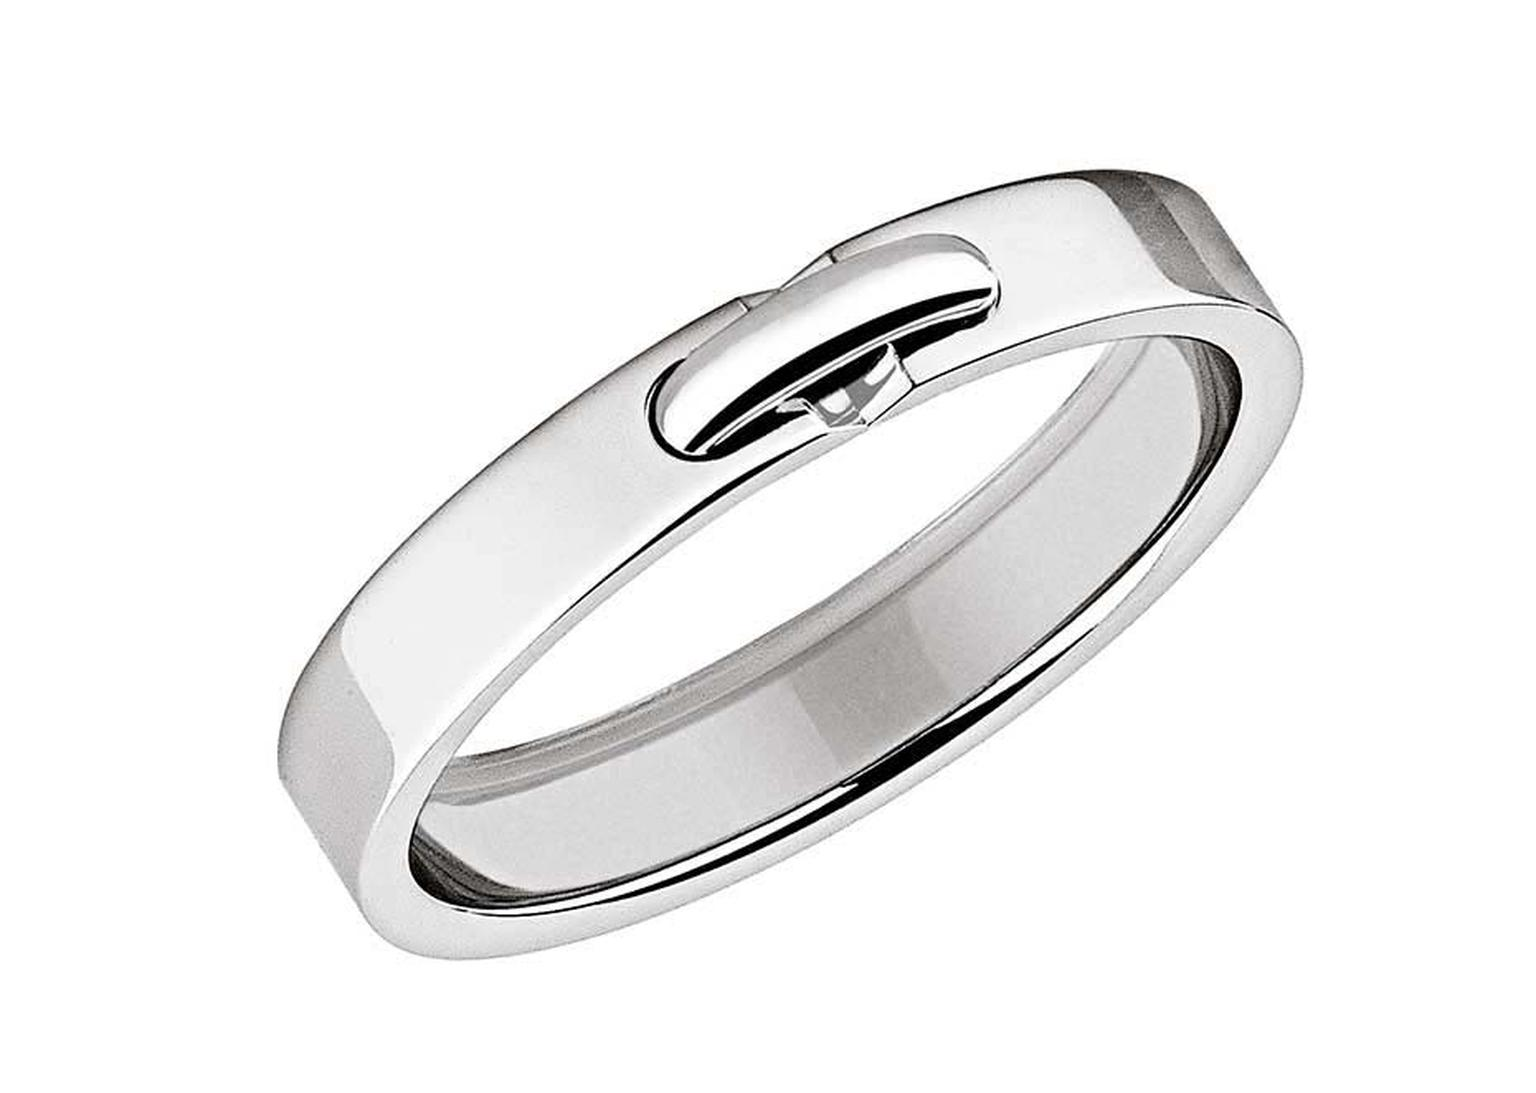 Liens de Chaumet platinum wedding band XXS model with a stylish link design.